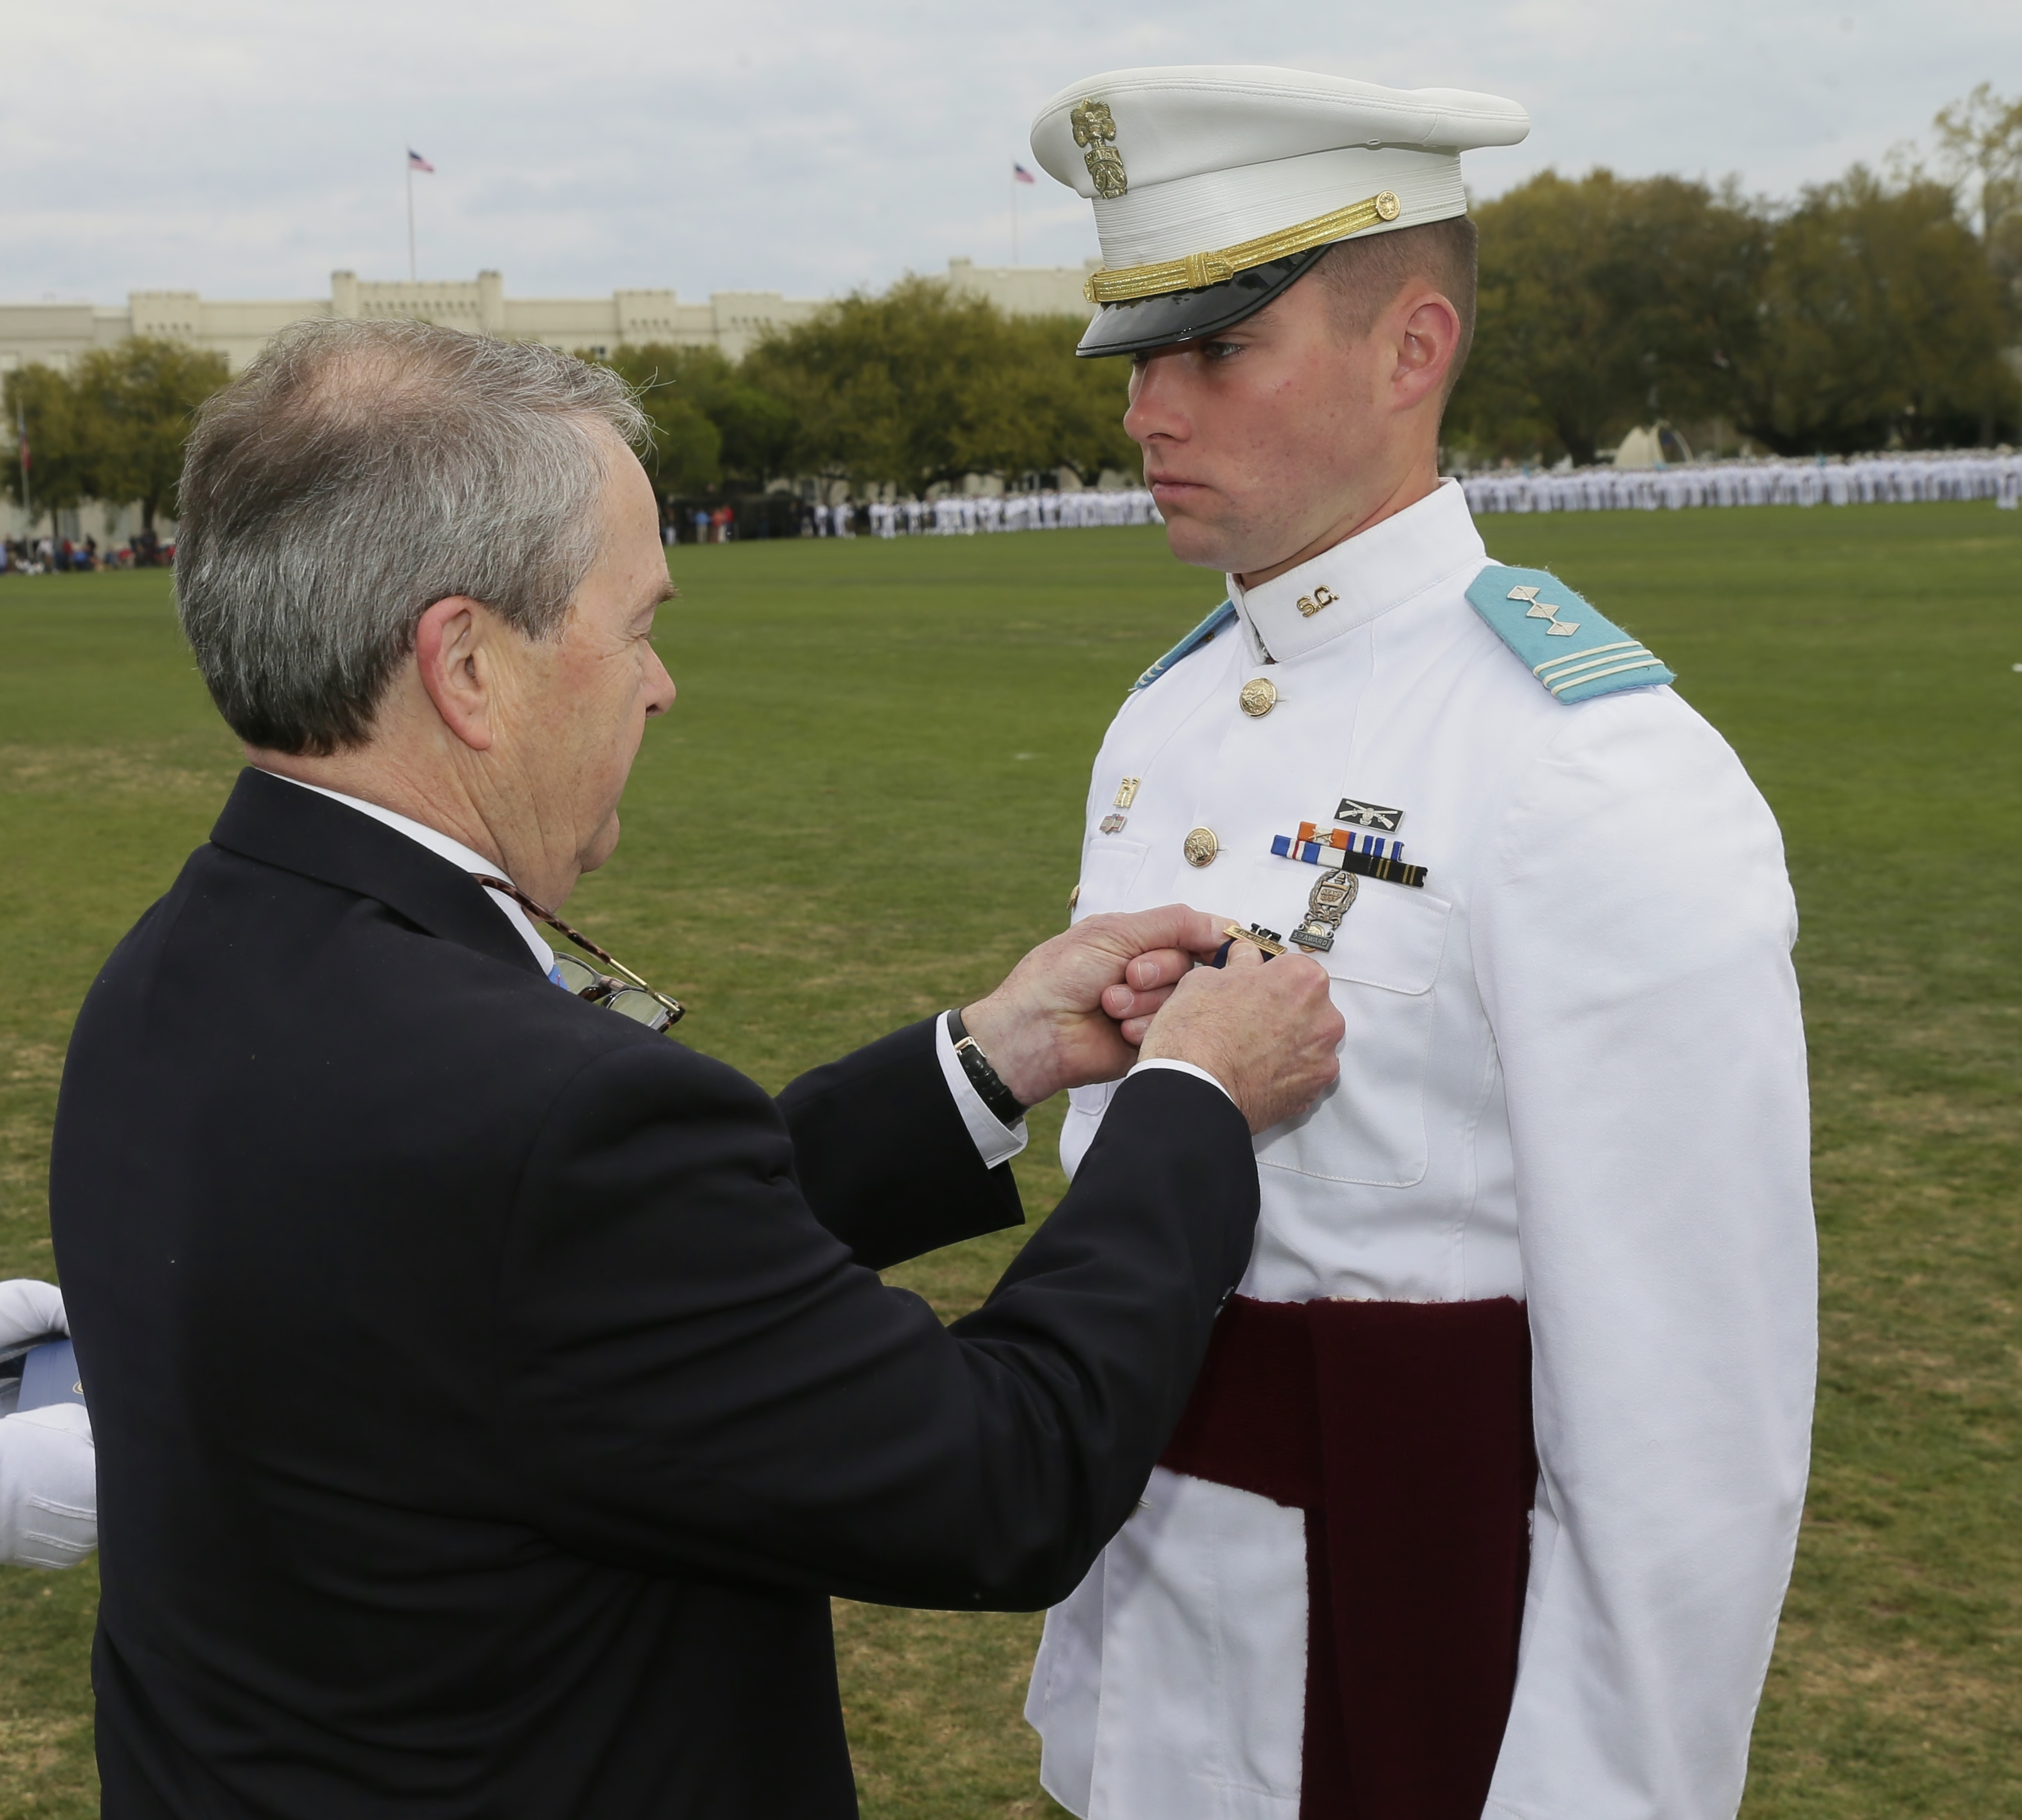 Citadel Regimental Commander MacDonald receives Palmetto Awared